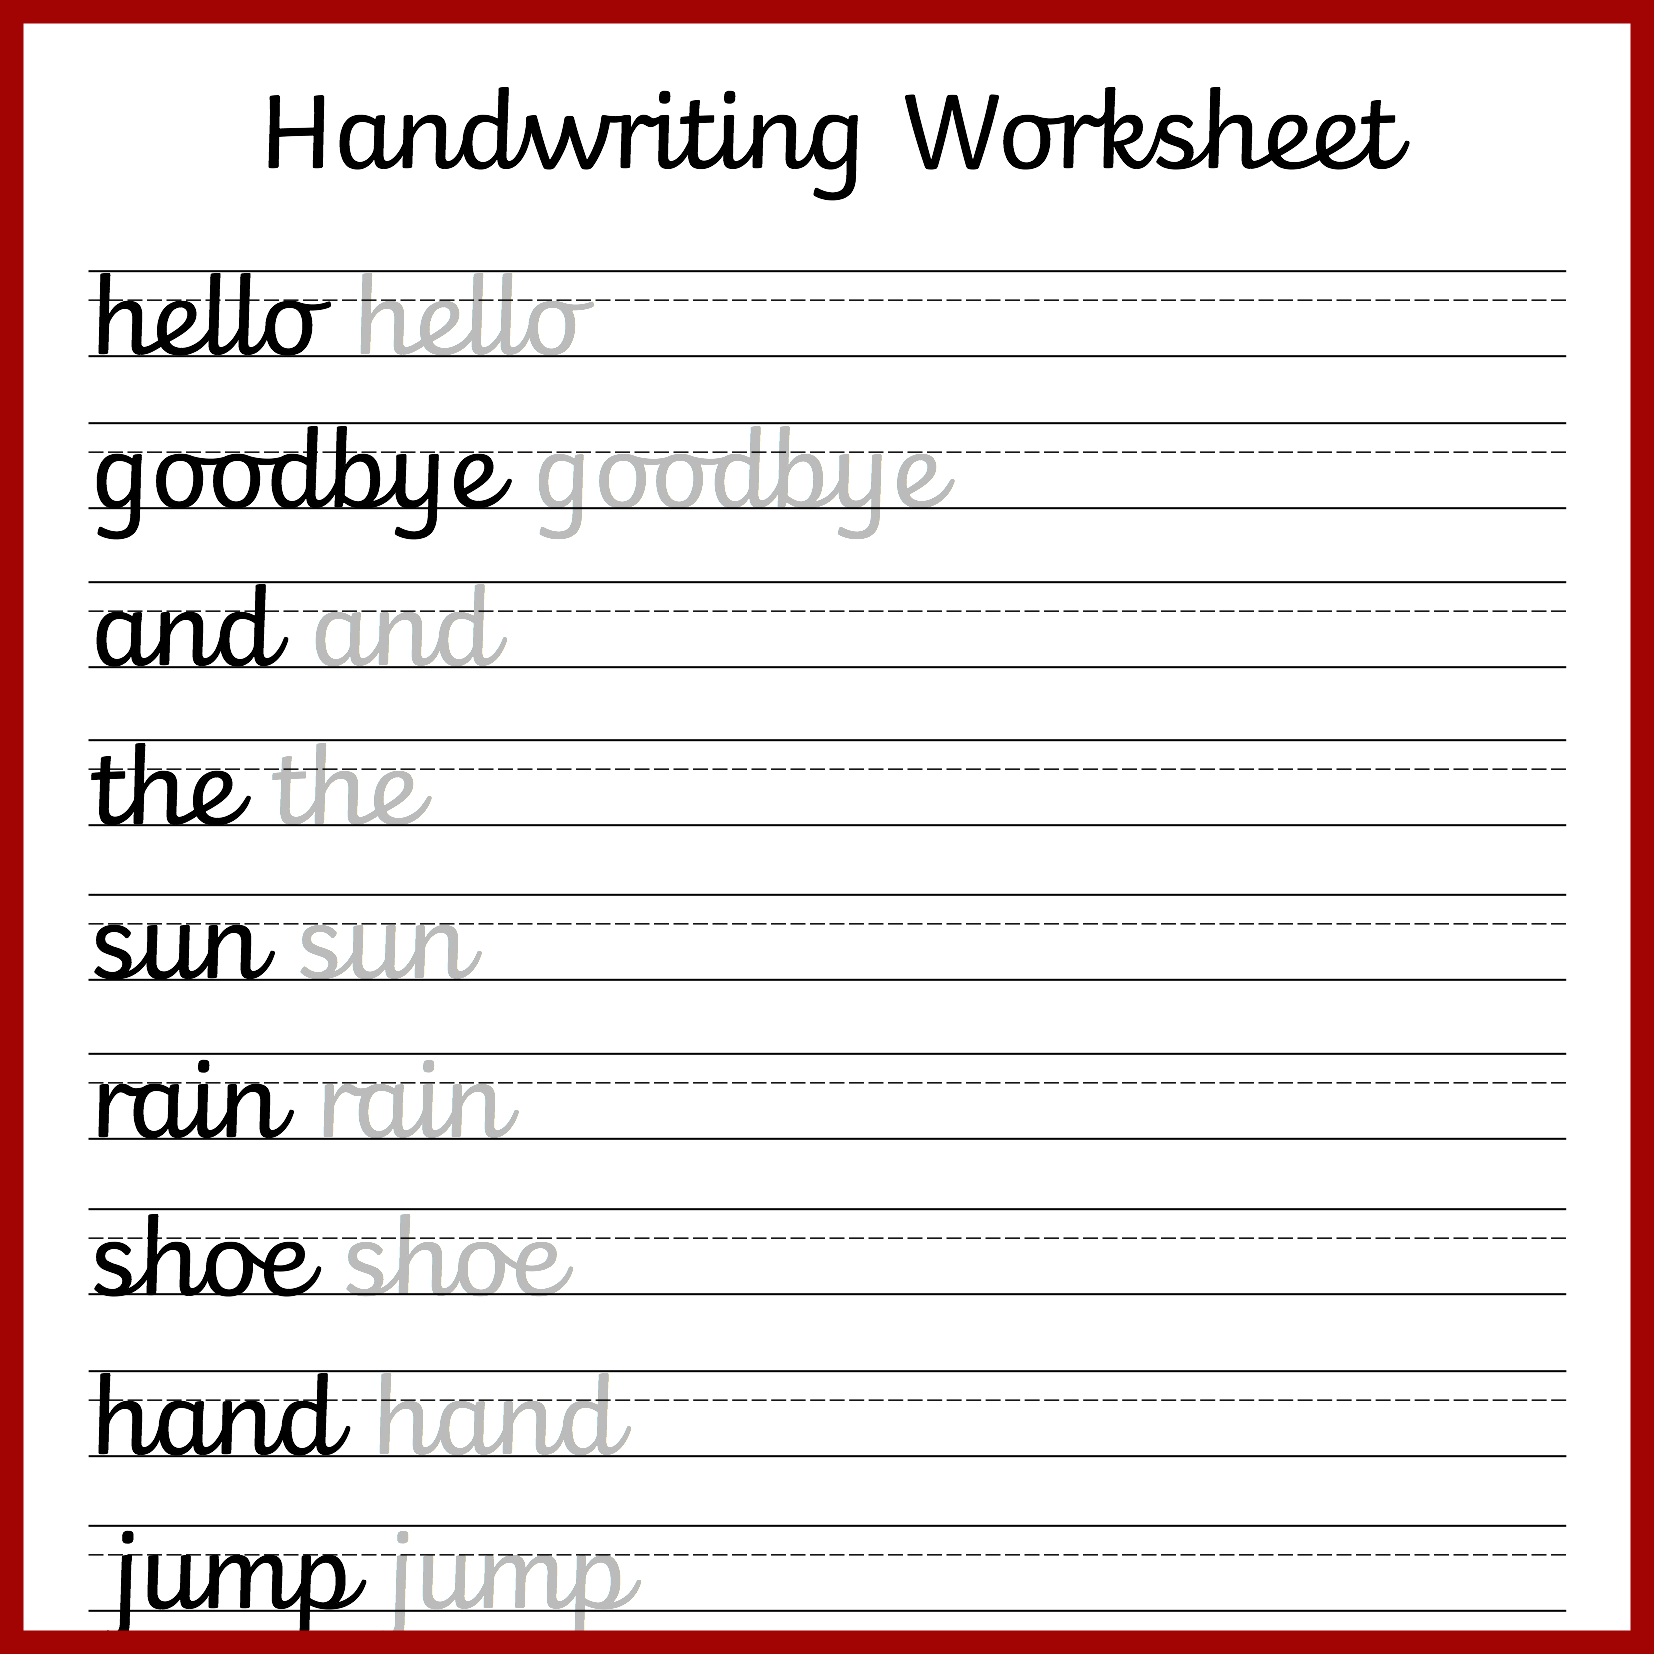 Worksheets Handwriting Worksheets Com Print writing practice sheet daway dabrowa co sheet